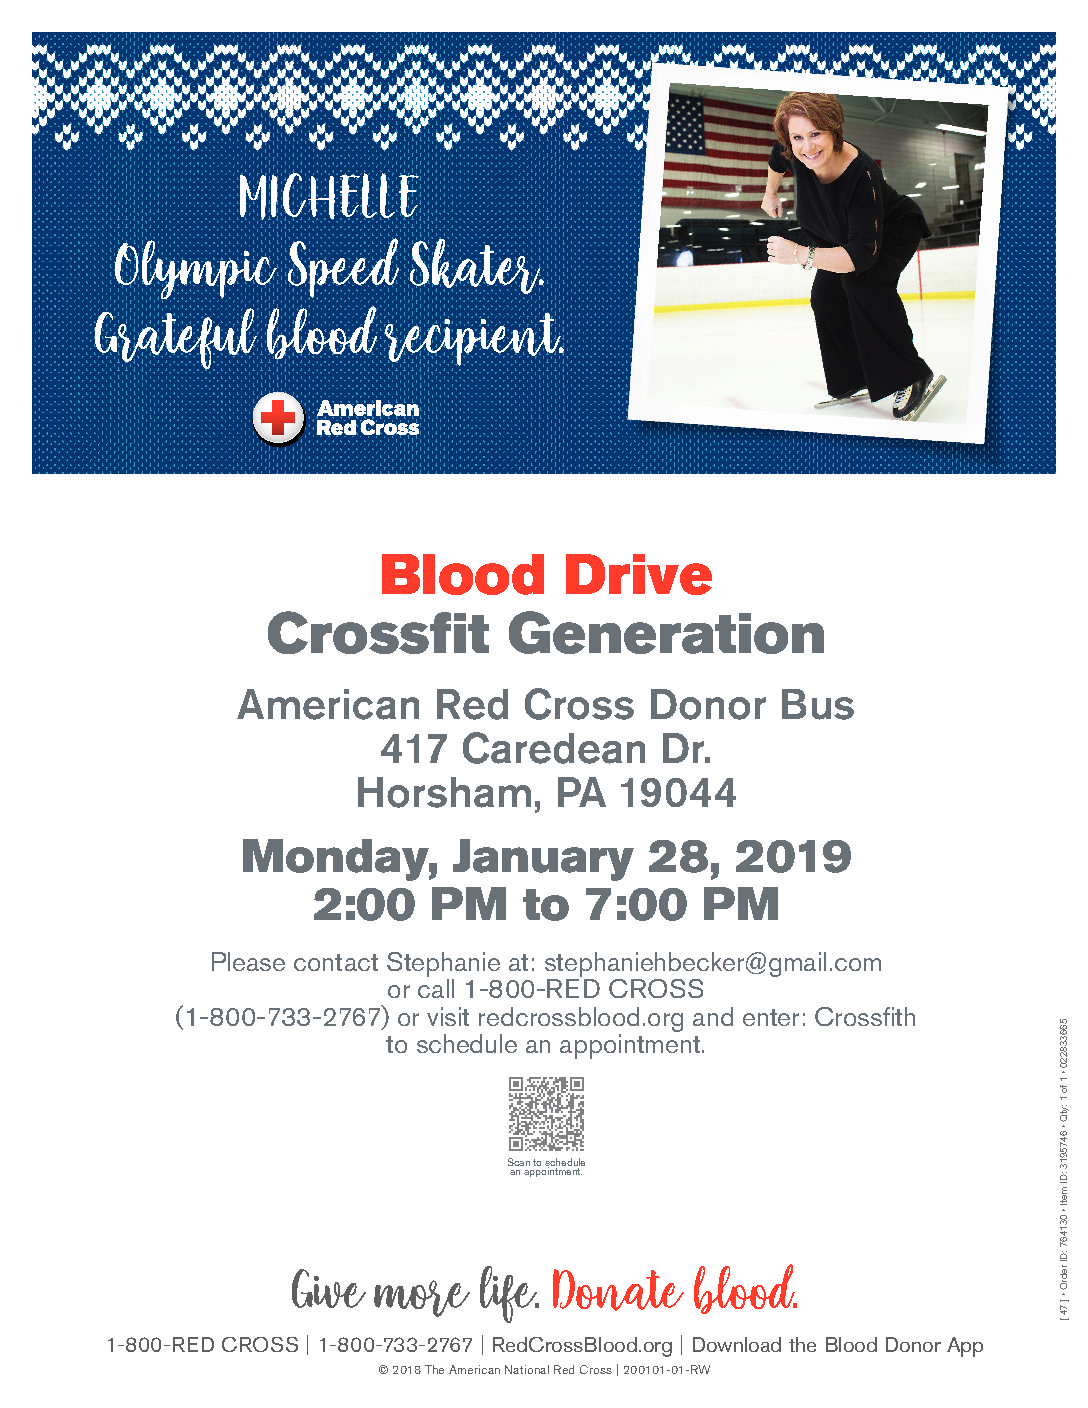 Blood Drive at CFG